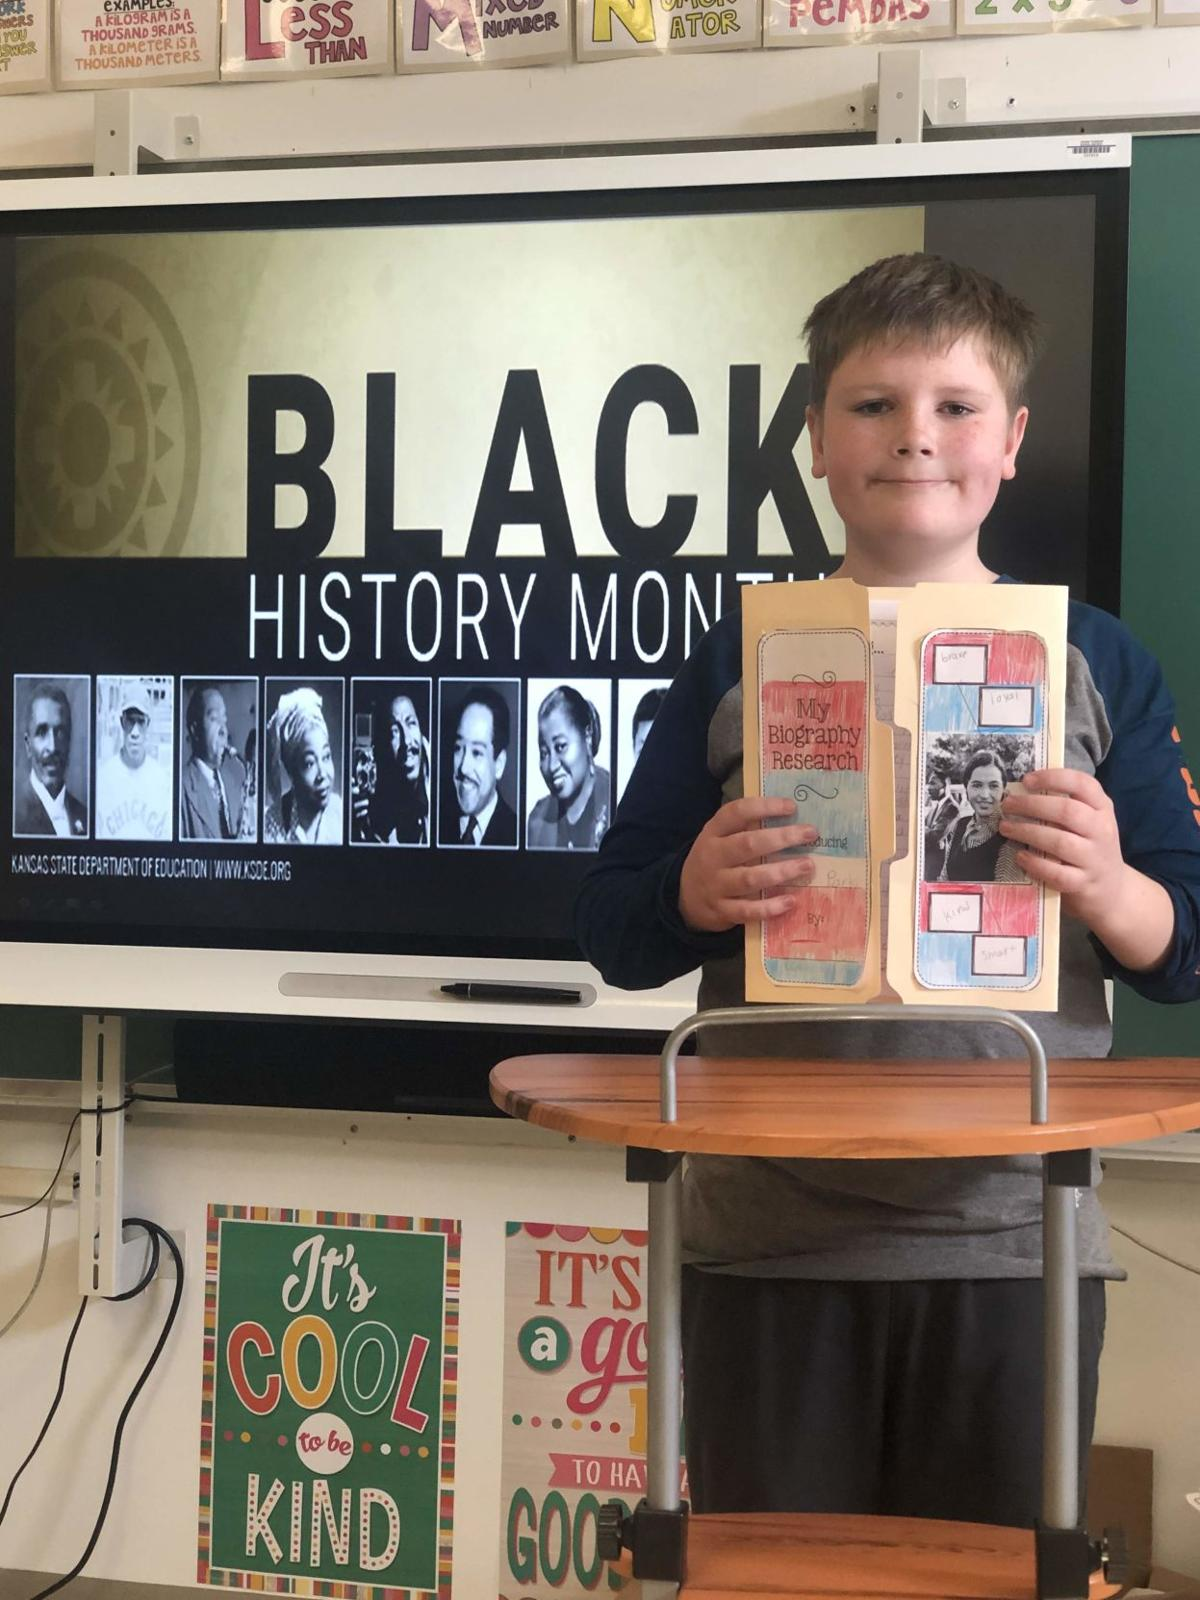 Dennis Township School Marks Black History Month